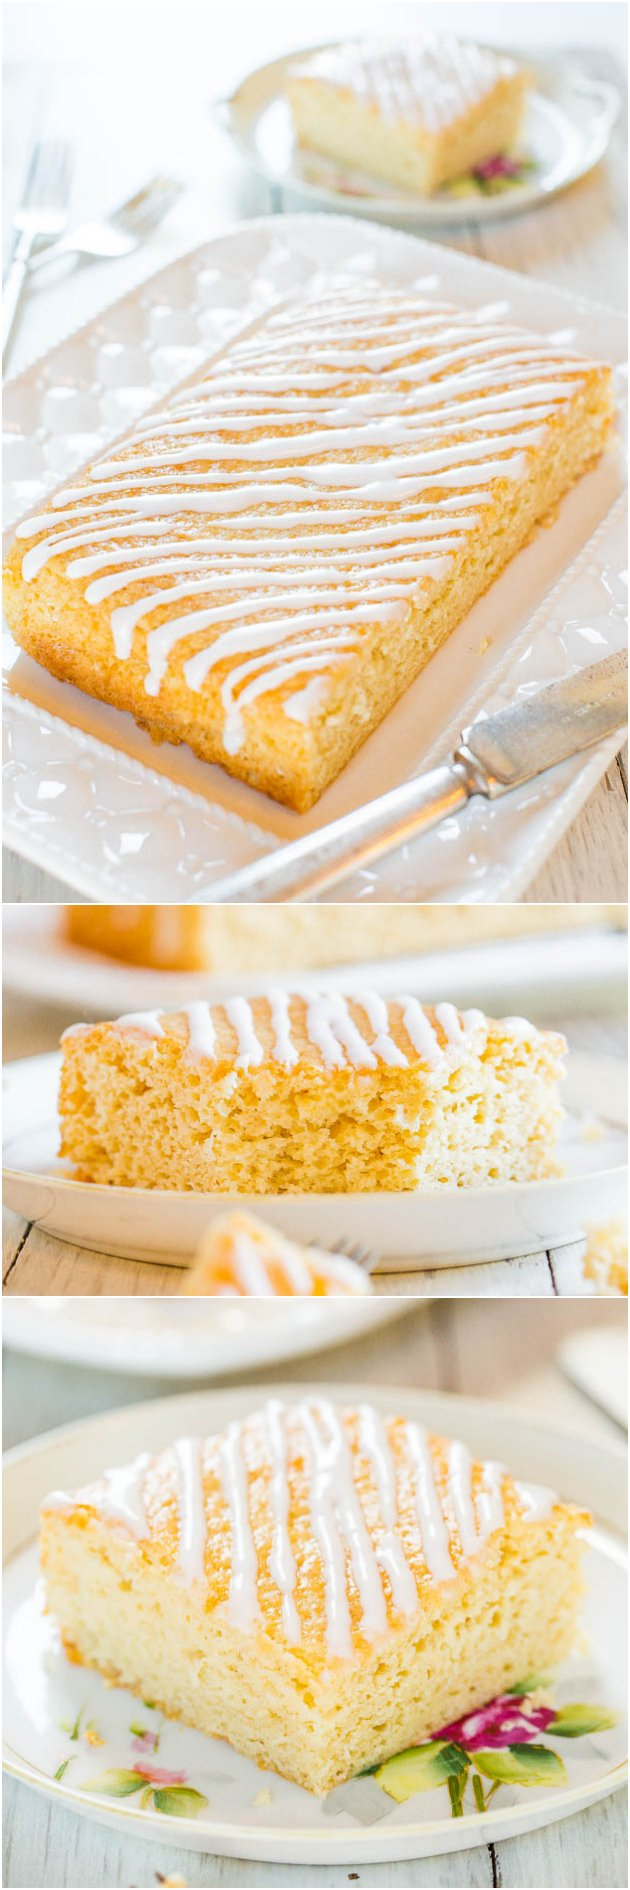 Sweet Cream Vanilla Coffee Cake - You'll never guess what special ingredient keeps this fast & easy cake so soft and moist!